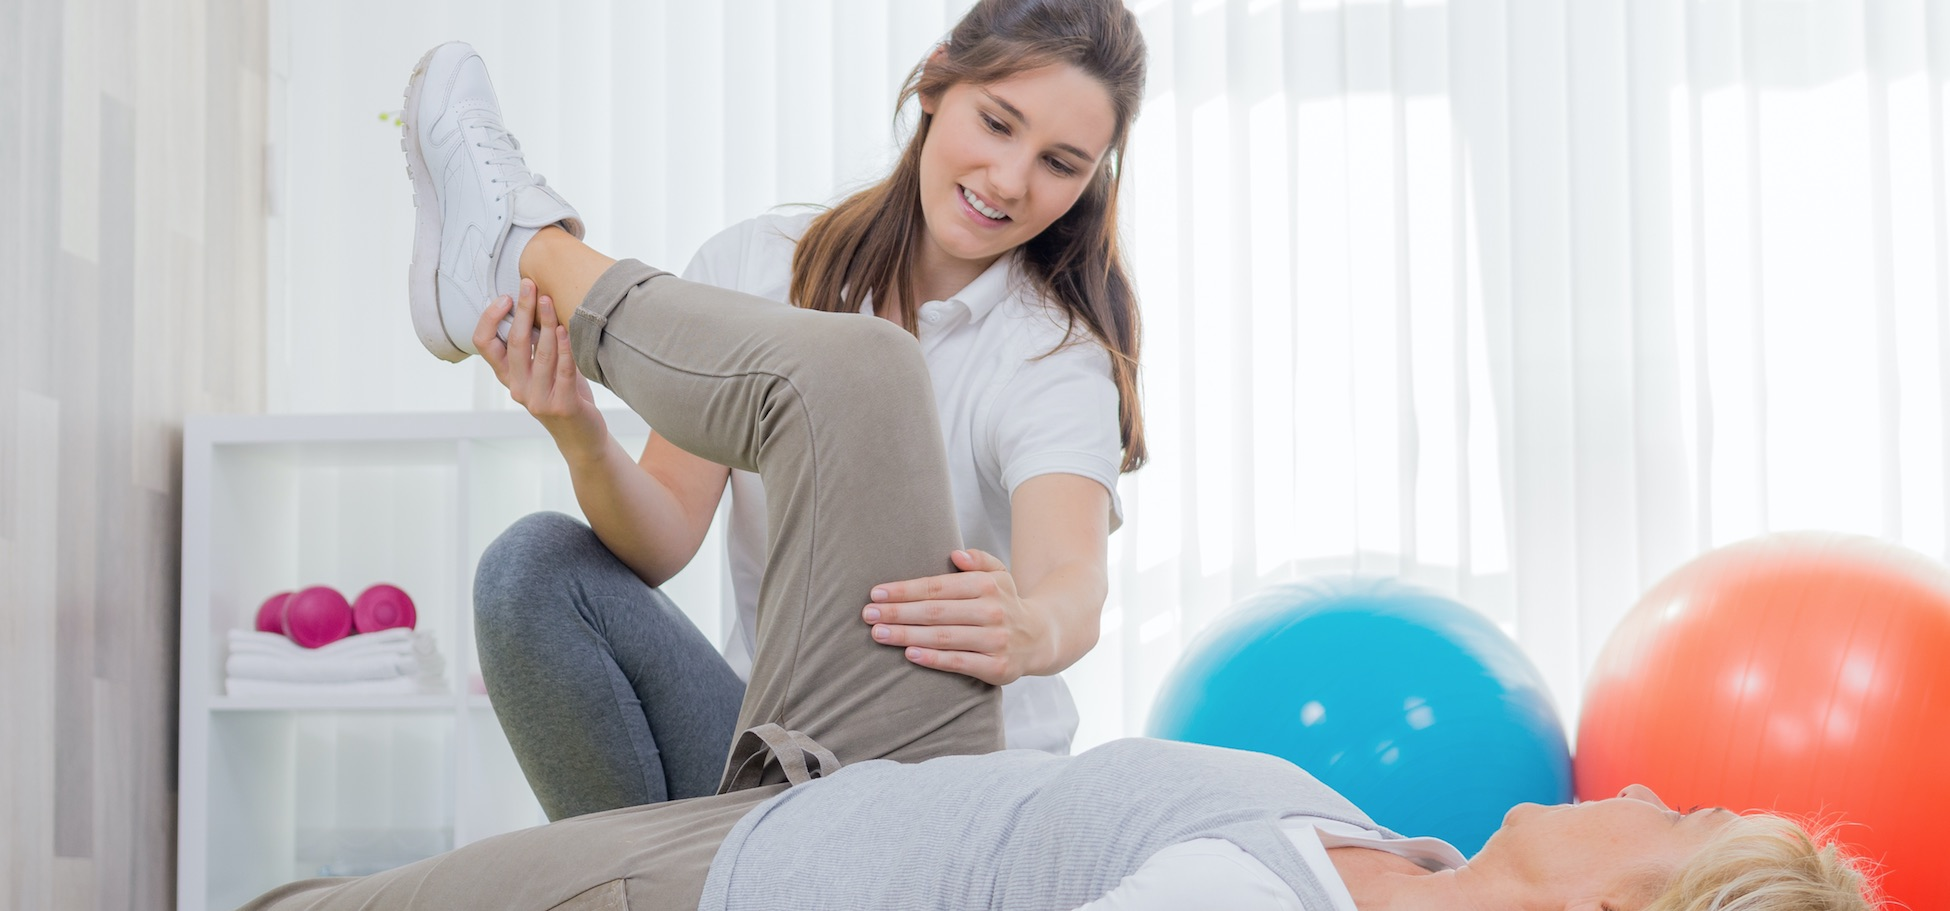 Chiropractor and Physical Therapy Clinic